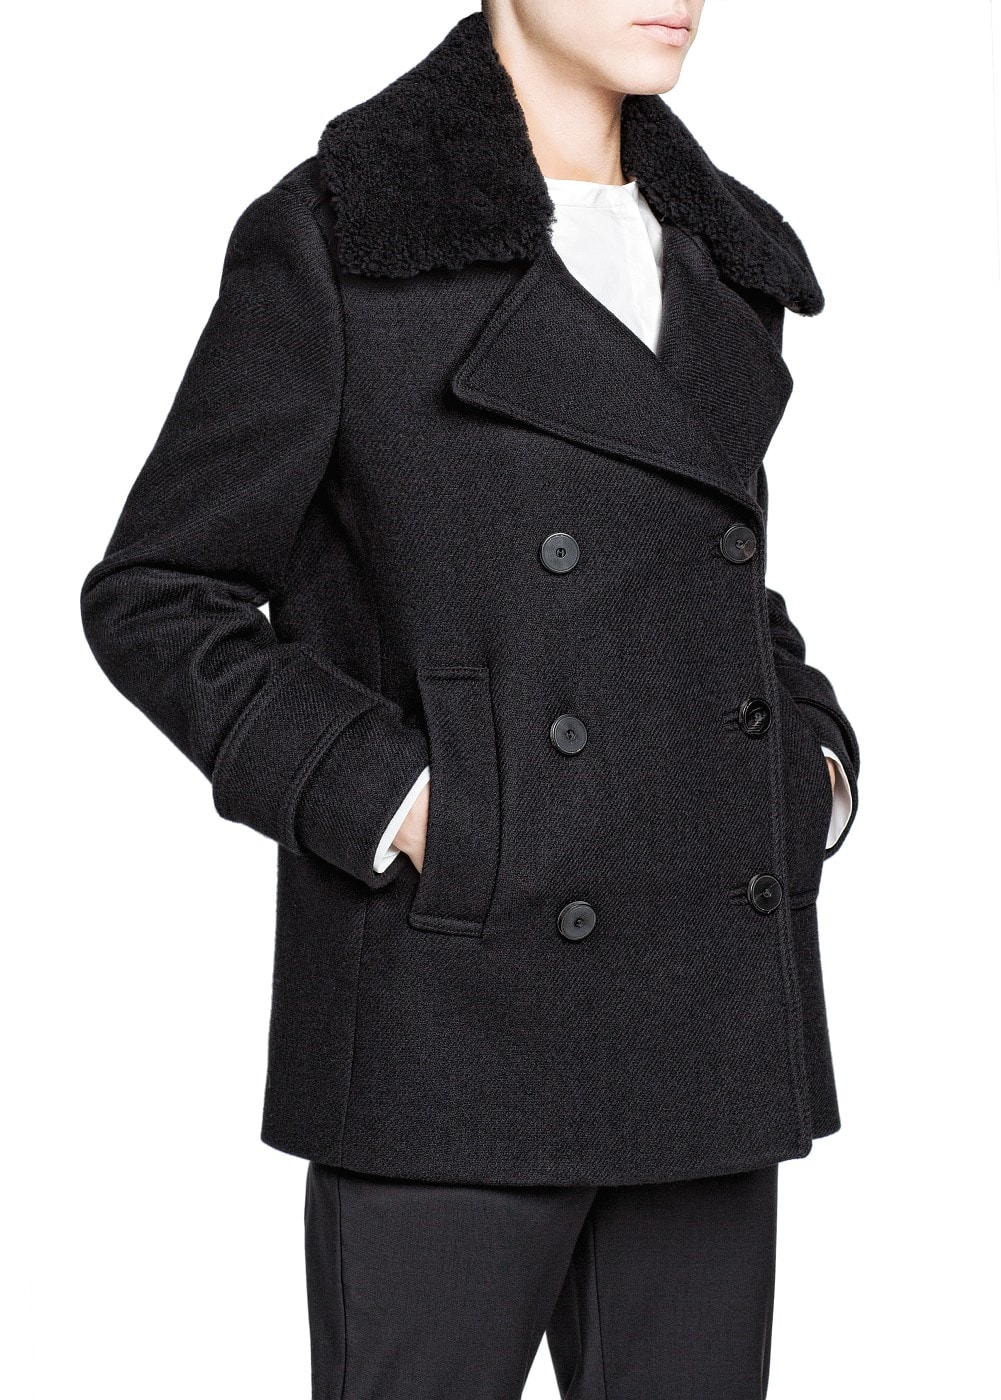 PREMIUM - Shearling collar wool-blend peacoat